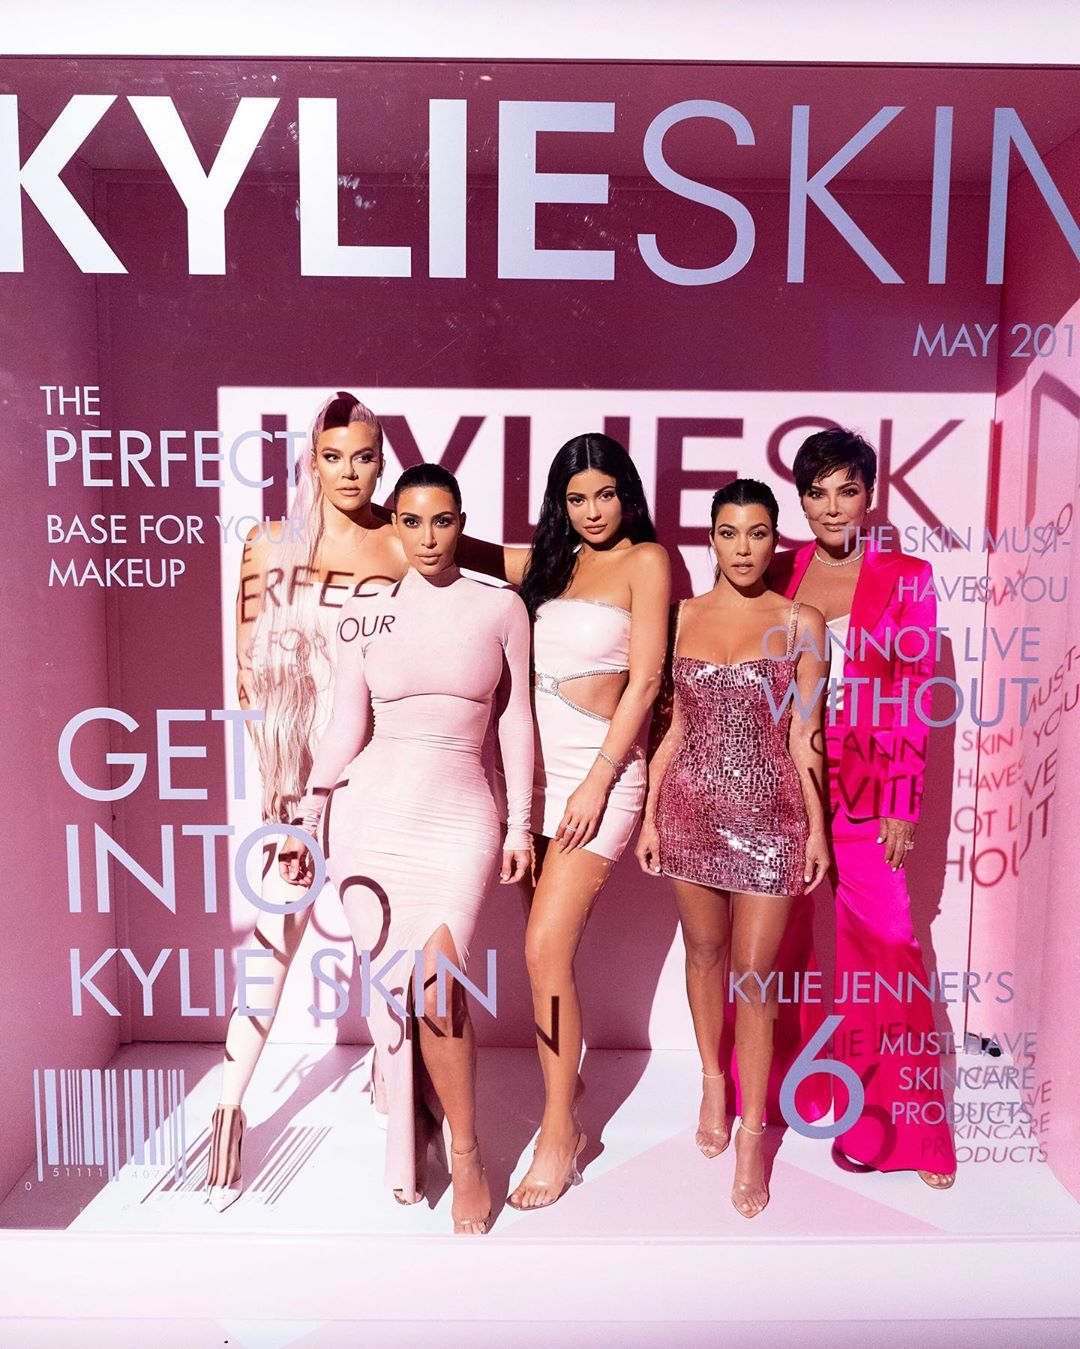 Kylie Jenner donning transparent open toe mules with high heel and PVC-strap